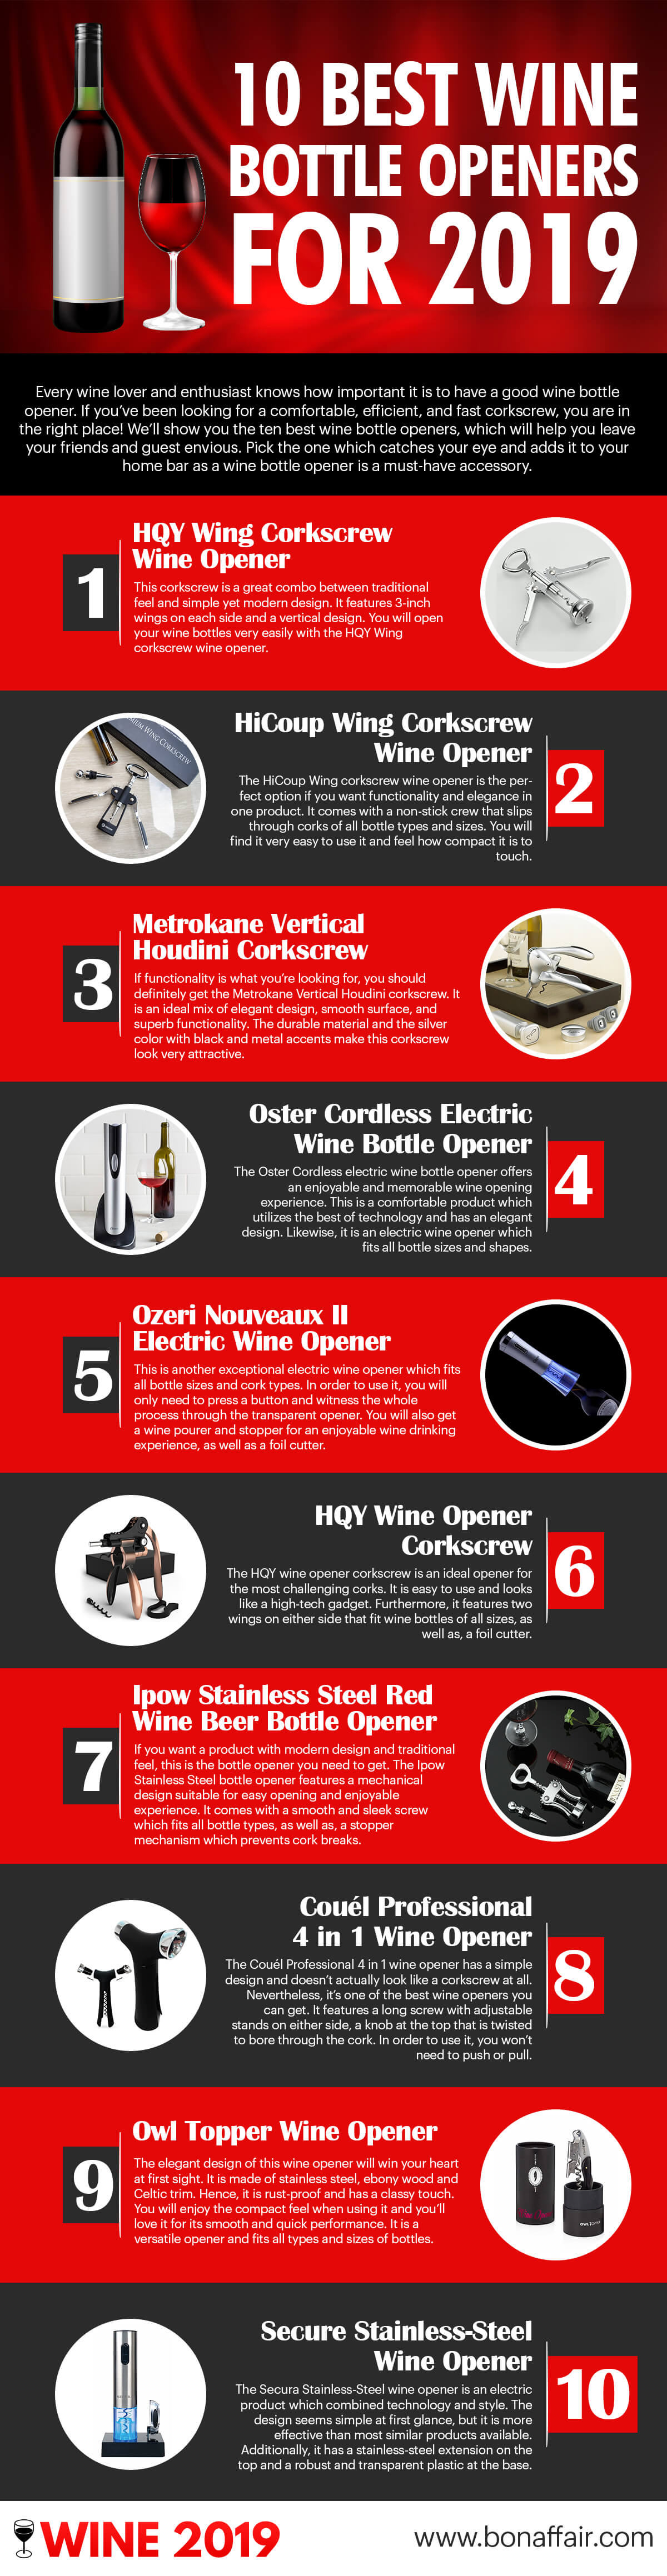 infographic02-best-wine-bottle-openers